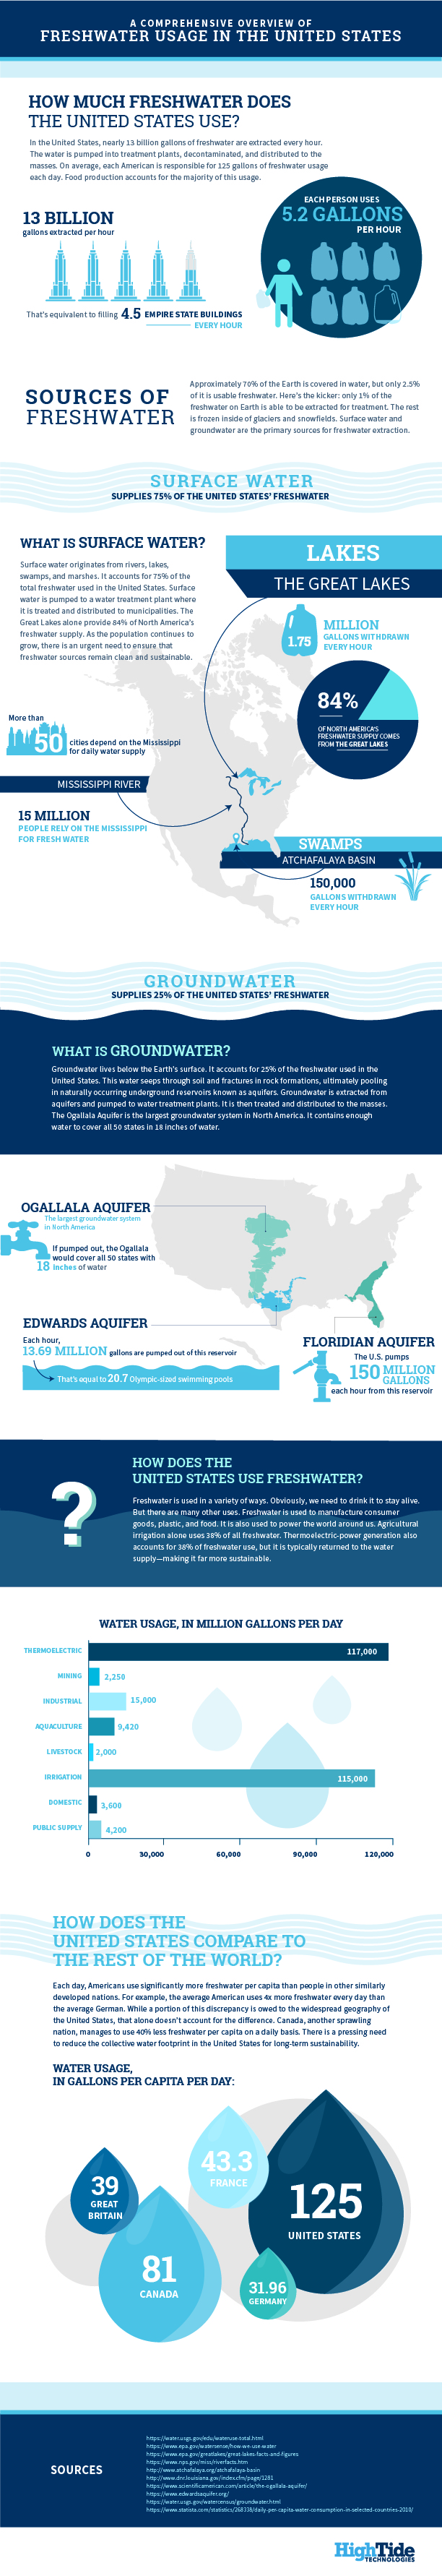 Importance of Monitoring Our Water Footprint: Freshwater Usage in the United States - Infographic